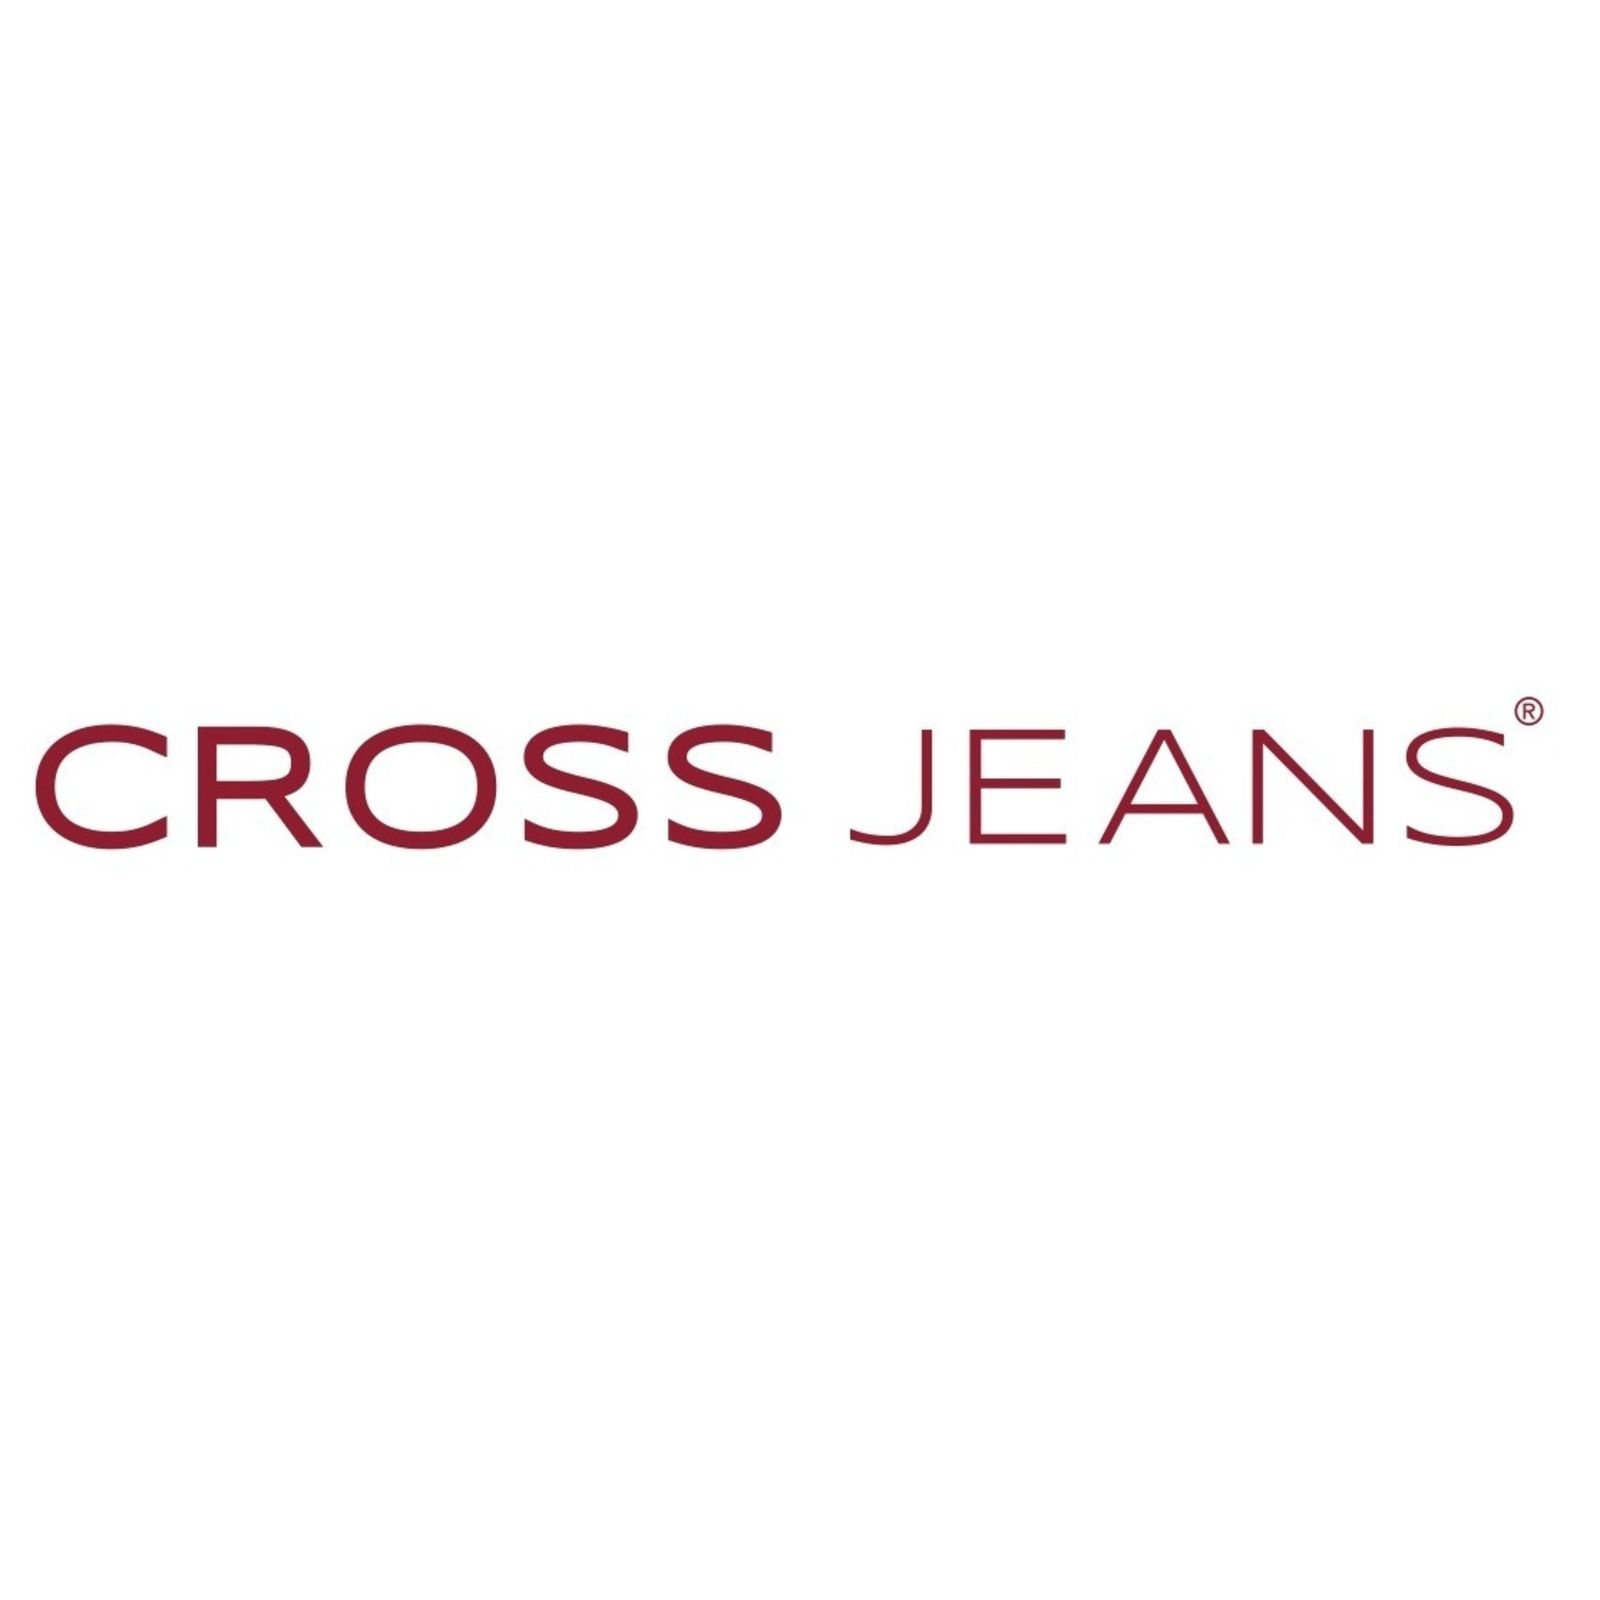 CROSS JEANS (Bild 1)